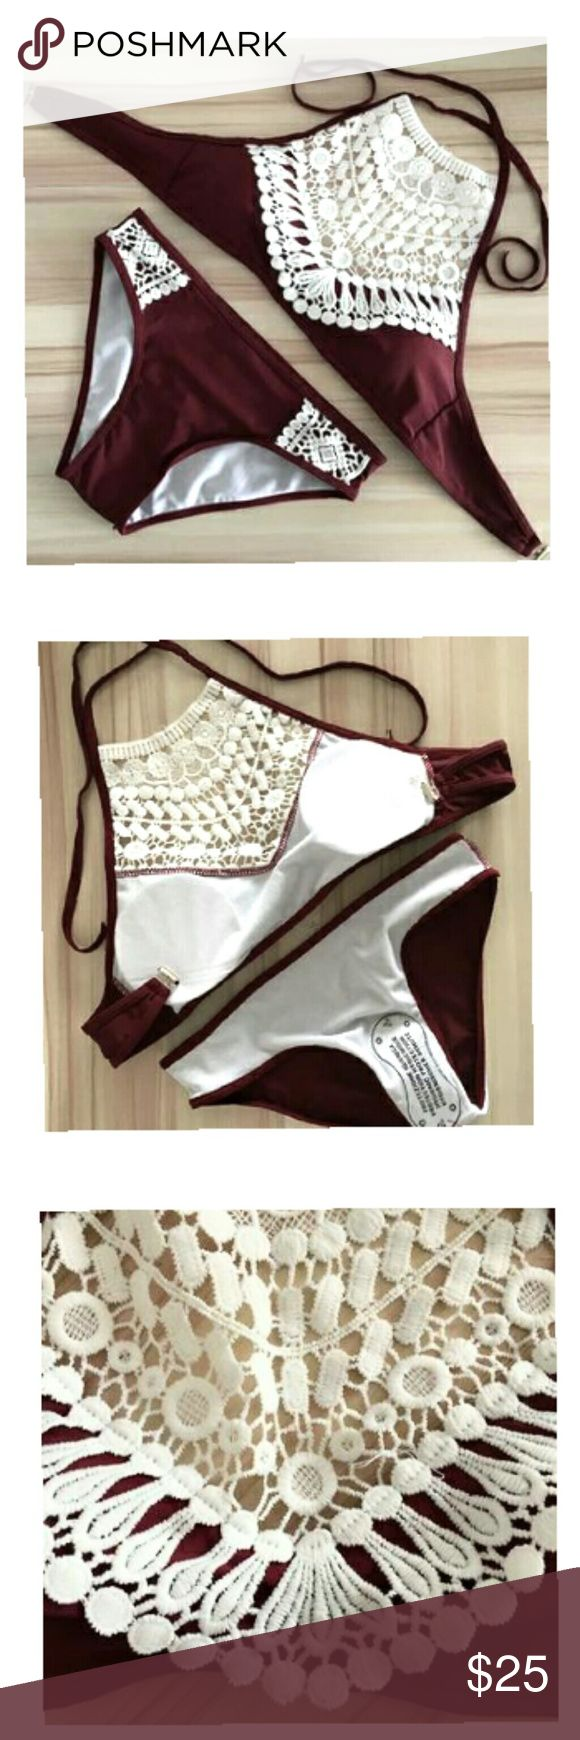 Crotchet swimsuit Brand new  Two piece set  True to size   Top: - Ties in the neckline like a halter top -Clips in the back for the closure -Crotchet design on too -Padded -Padding is removable  -Lined  Bottoms: -Regular coverage - Lined -Has hygienic liner -Crotchet design too Swim Bikinis